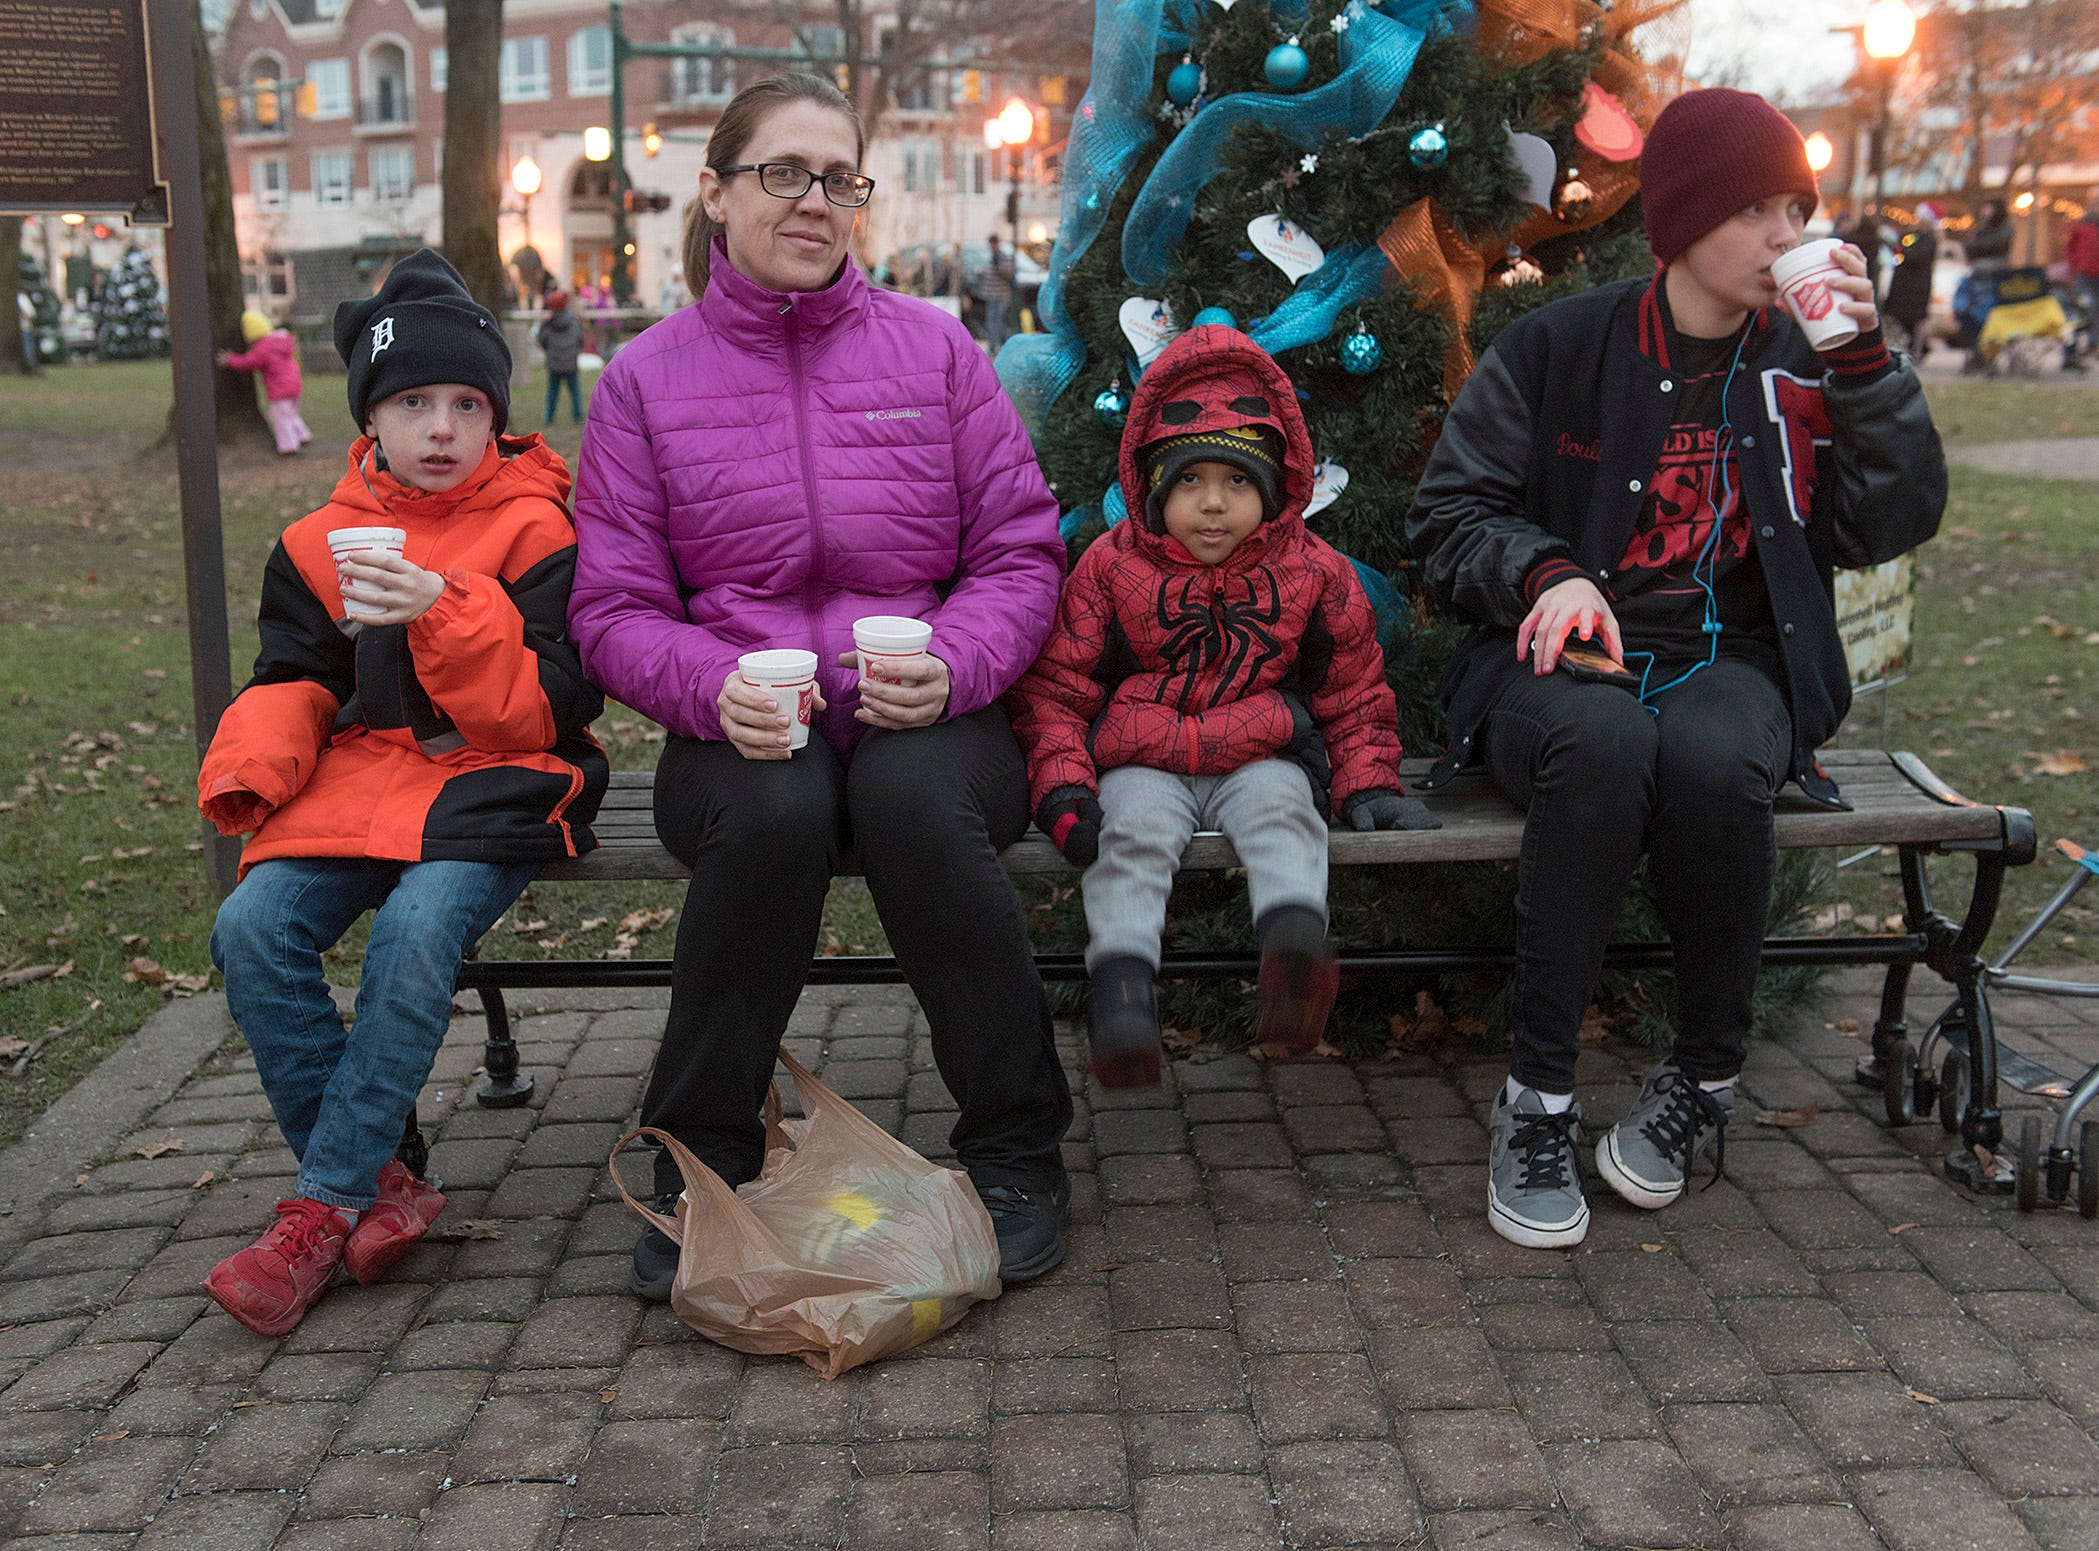 Sara Pouliet, with kids Jared, 6 years old, Joshua, 3 years old, and Jax, 17, enjoy hot chocolate before Santa's arrival. They are from Westland.